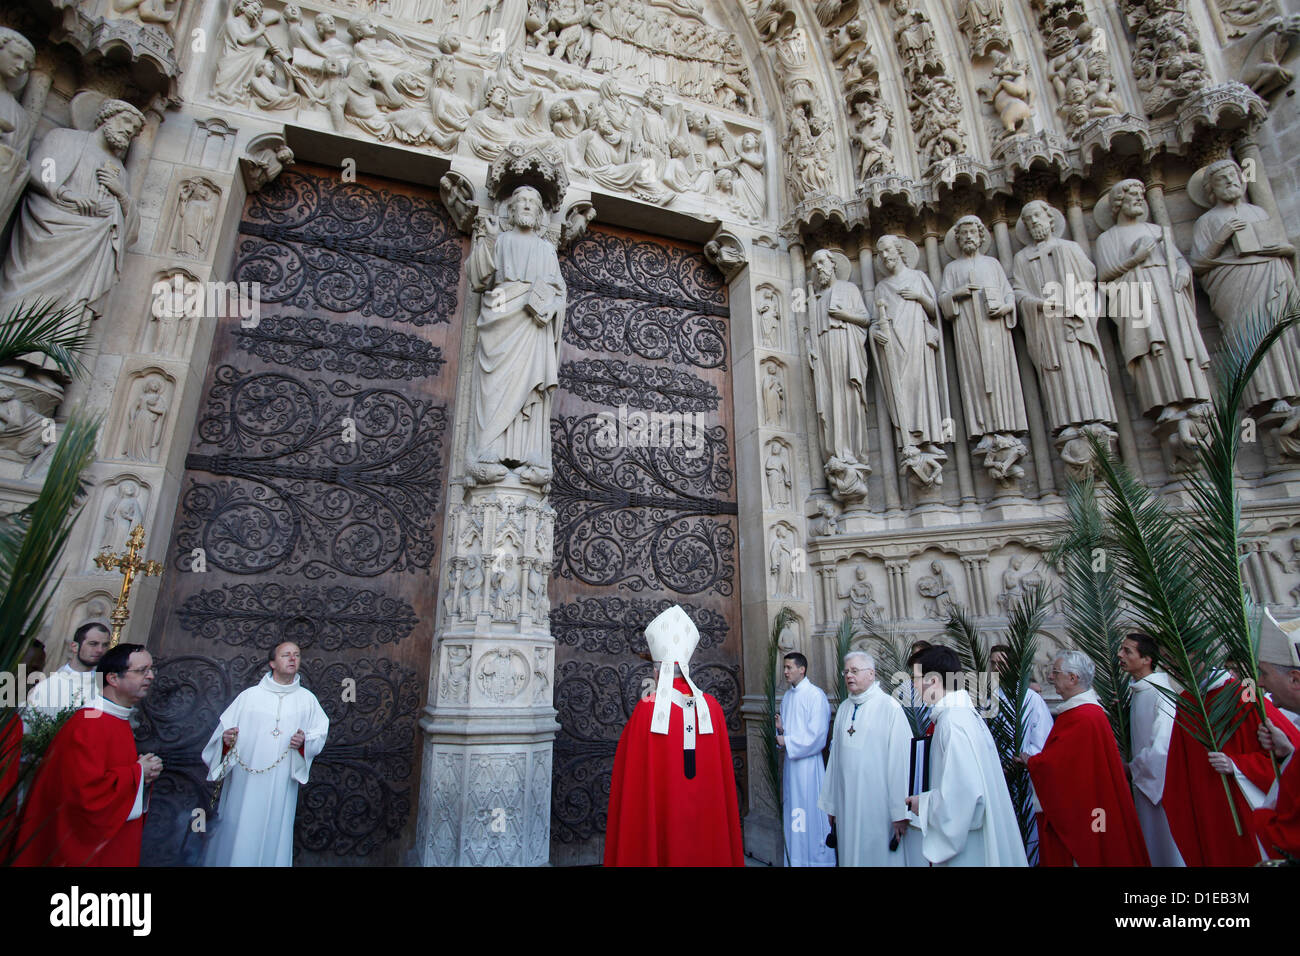 Palm Sunday at Notre Dame Cathedral, Paris, France, Europe - Stock Image